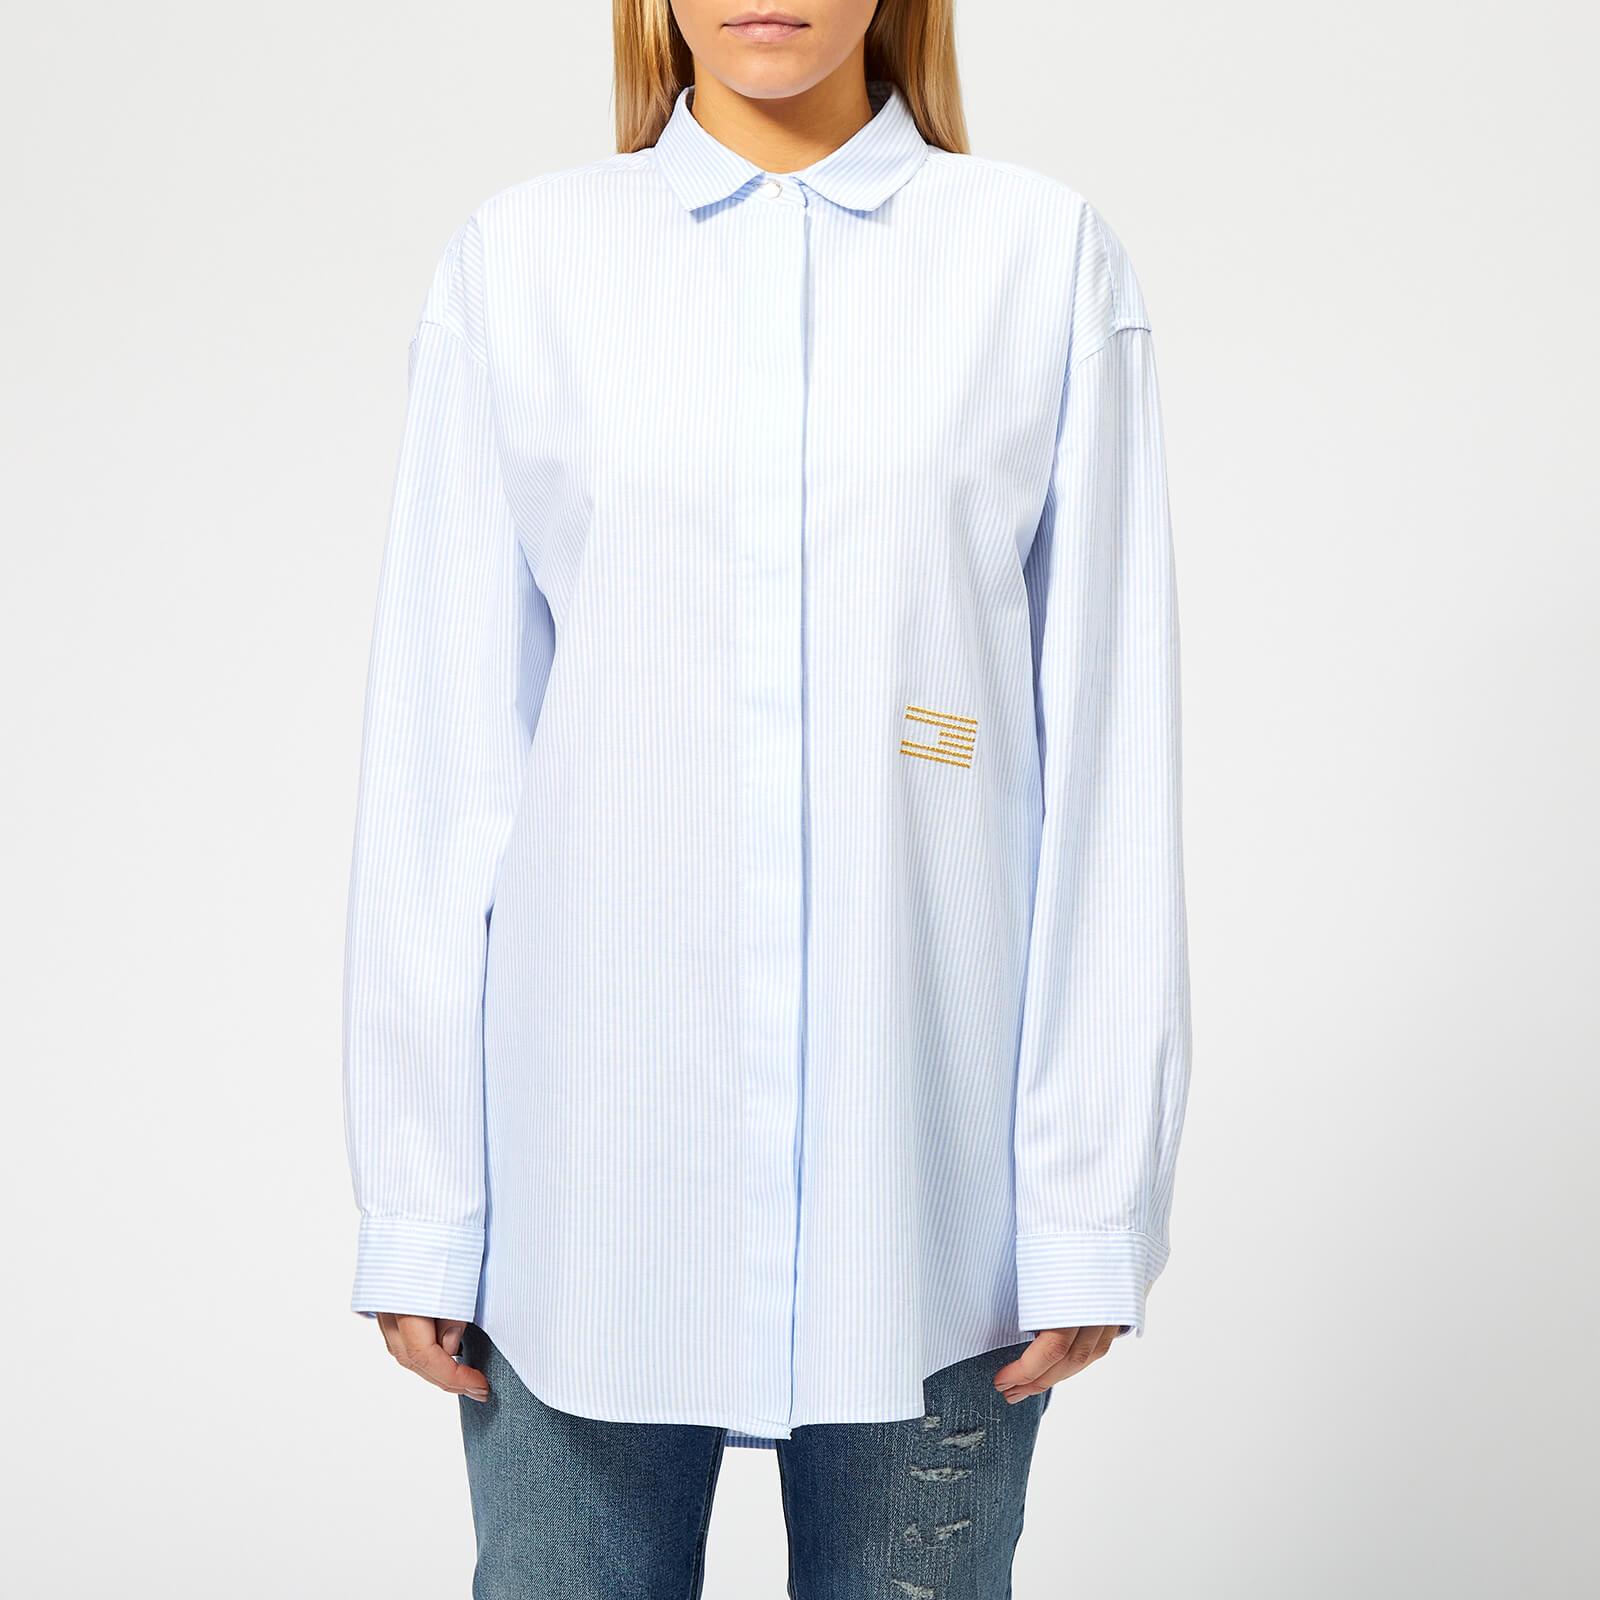 8709d649a5e Tommy Hilfiger Women's Icons Pames Boyfriend Shirt - Blue Stripe Womens  Clothing | TheHut.com